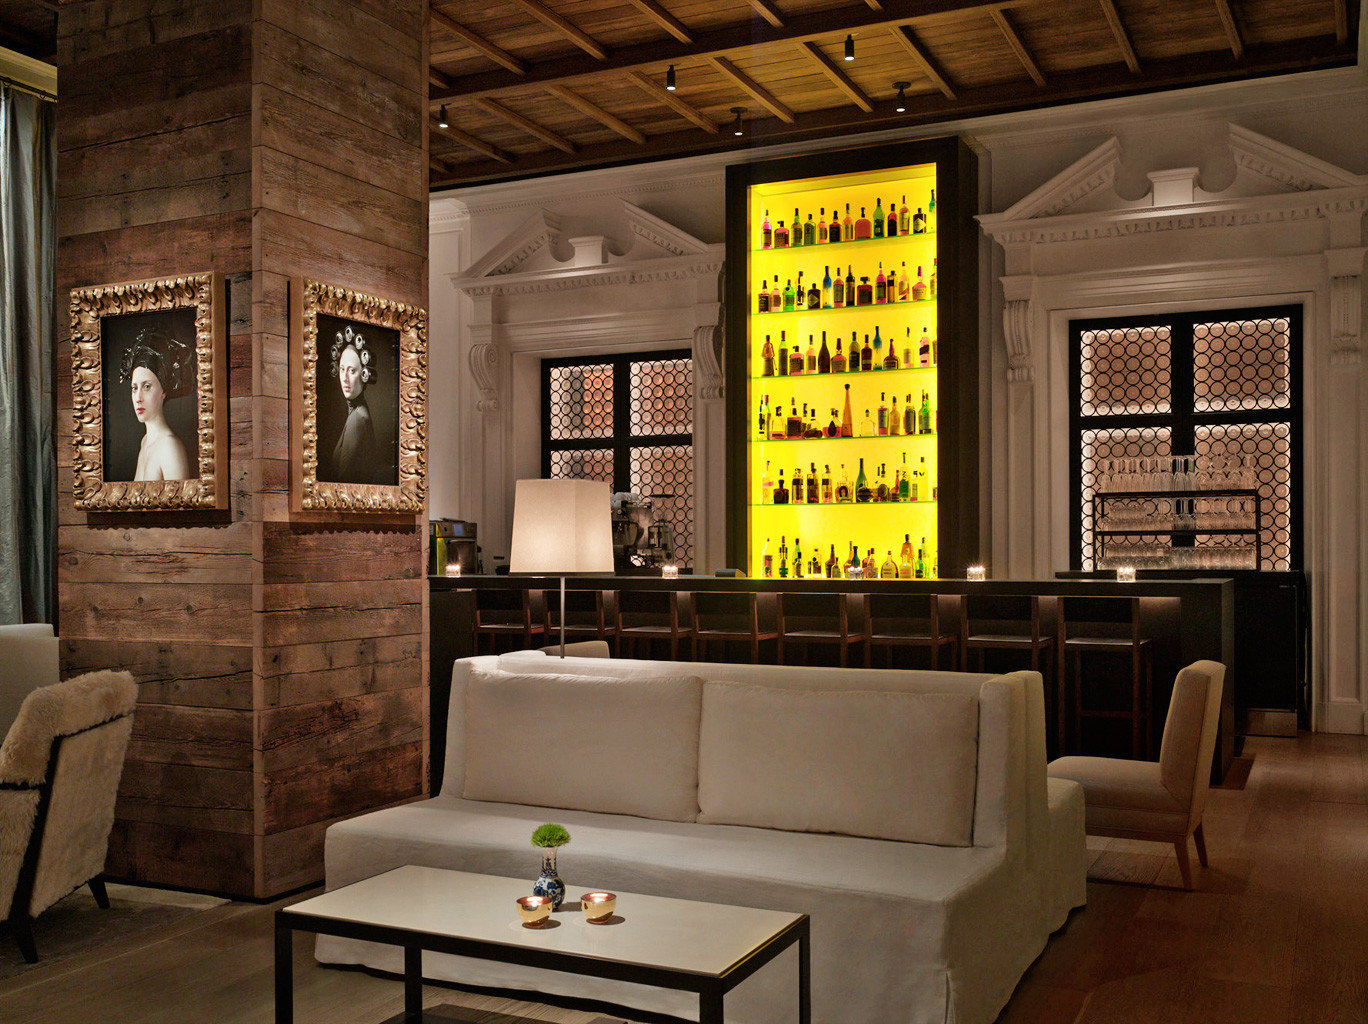 Bar Boutique Dining Drink Eat Food + Drink Historic Hotels Lounge Trip Ideas indoor Living floor room ceiling living room Lobby furniture interior design estate home lighting Design window covering area several